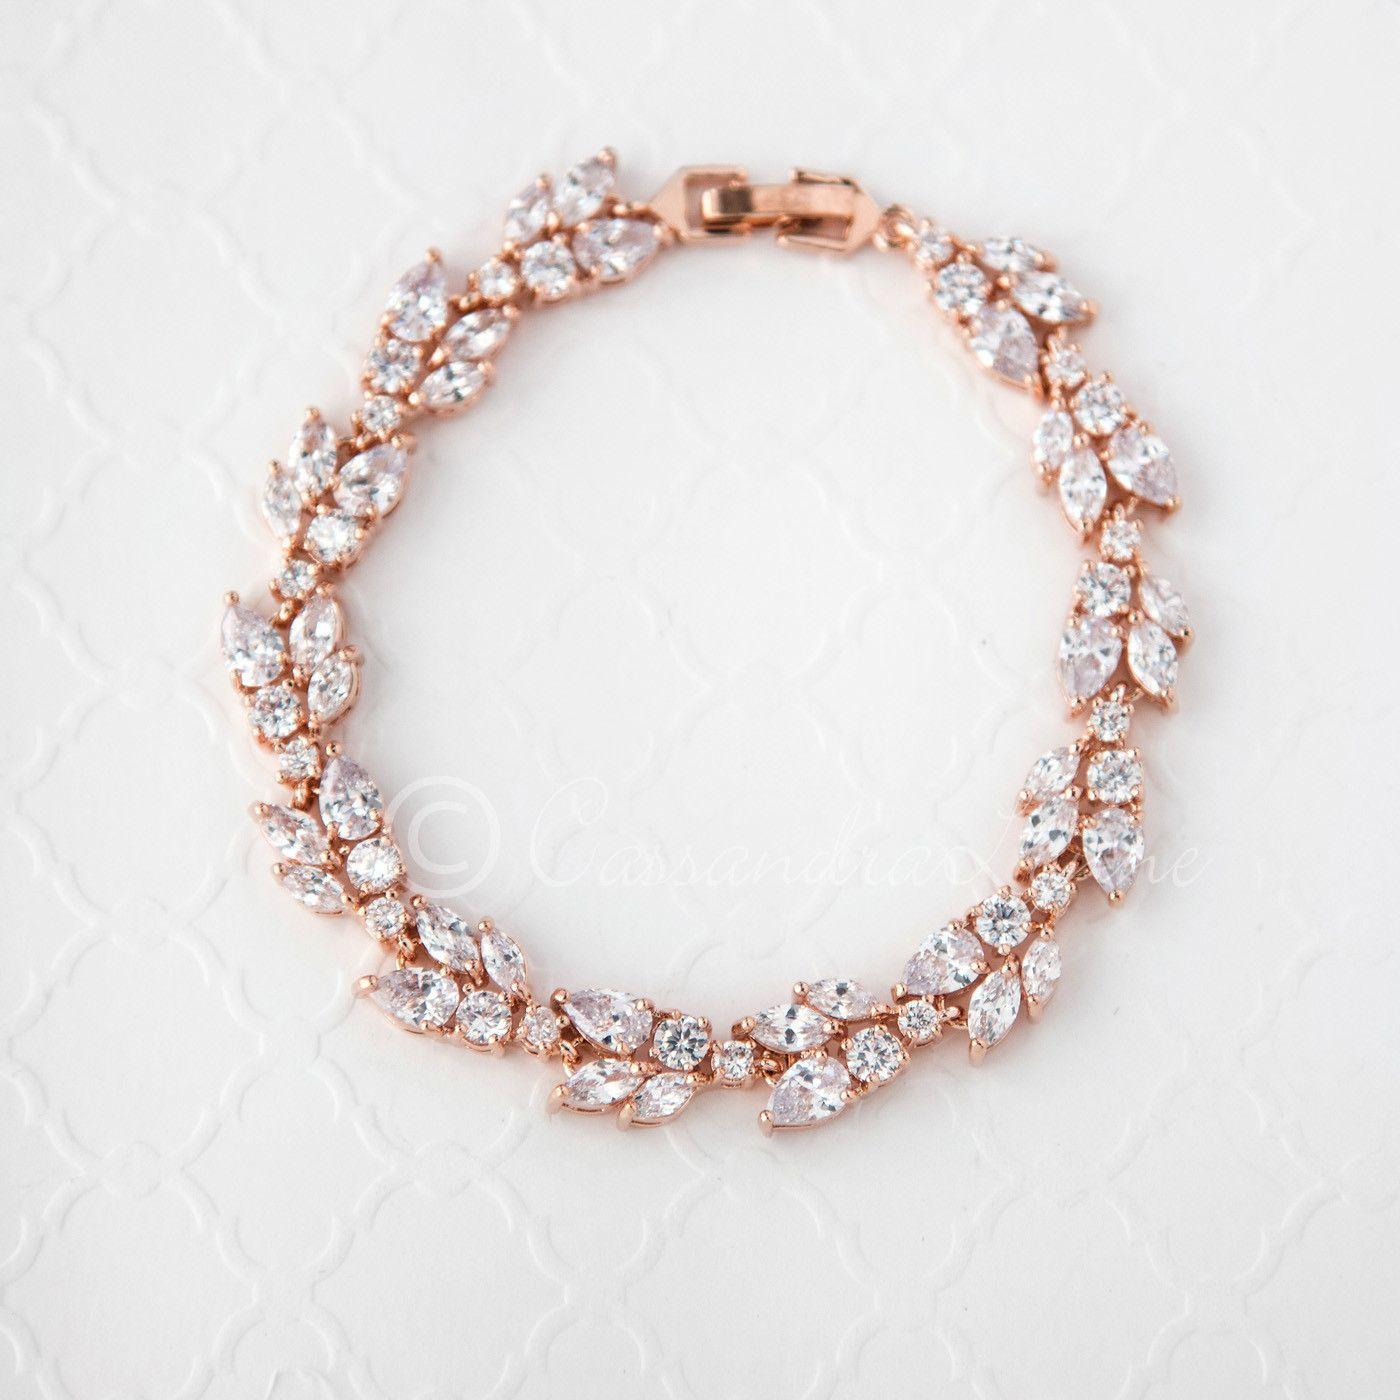 Rose Gold Bridal Bracelet with Marquise Leaf CZ Pear Jewel and Rose